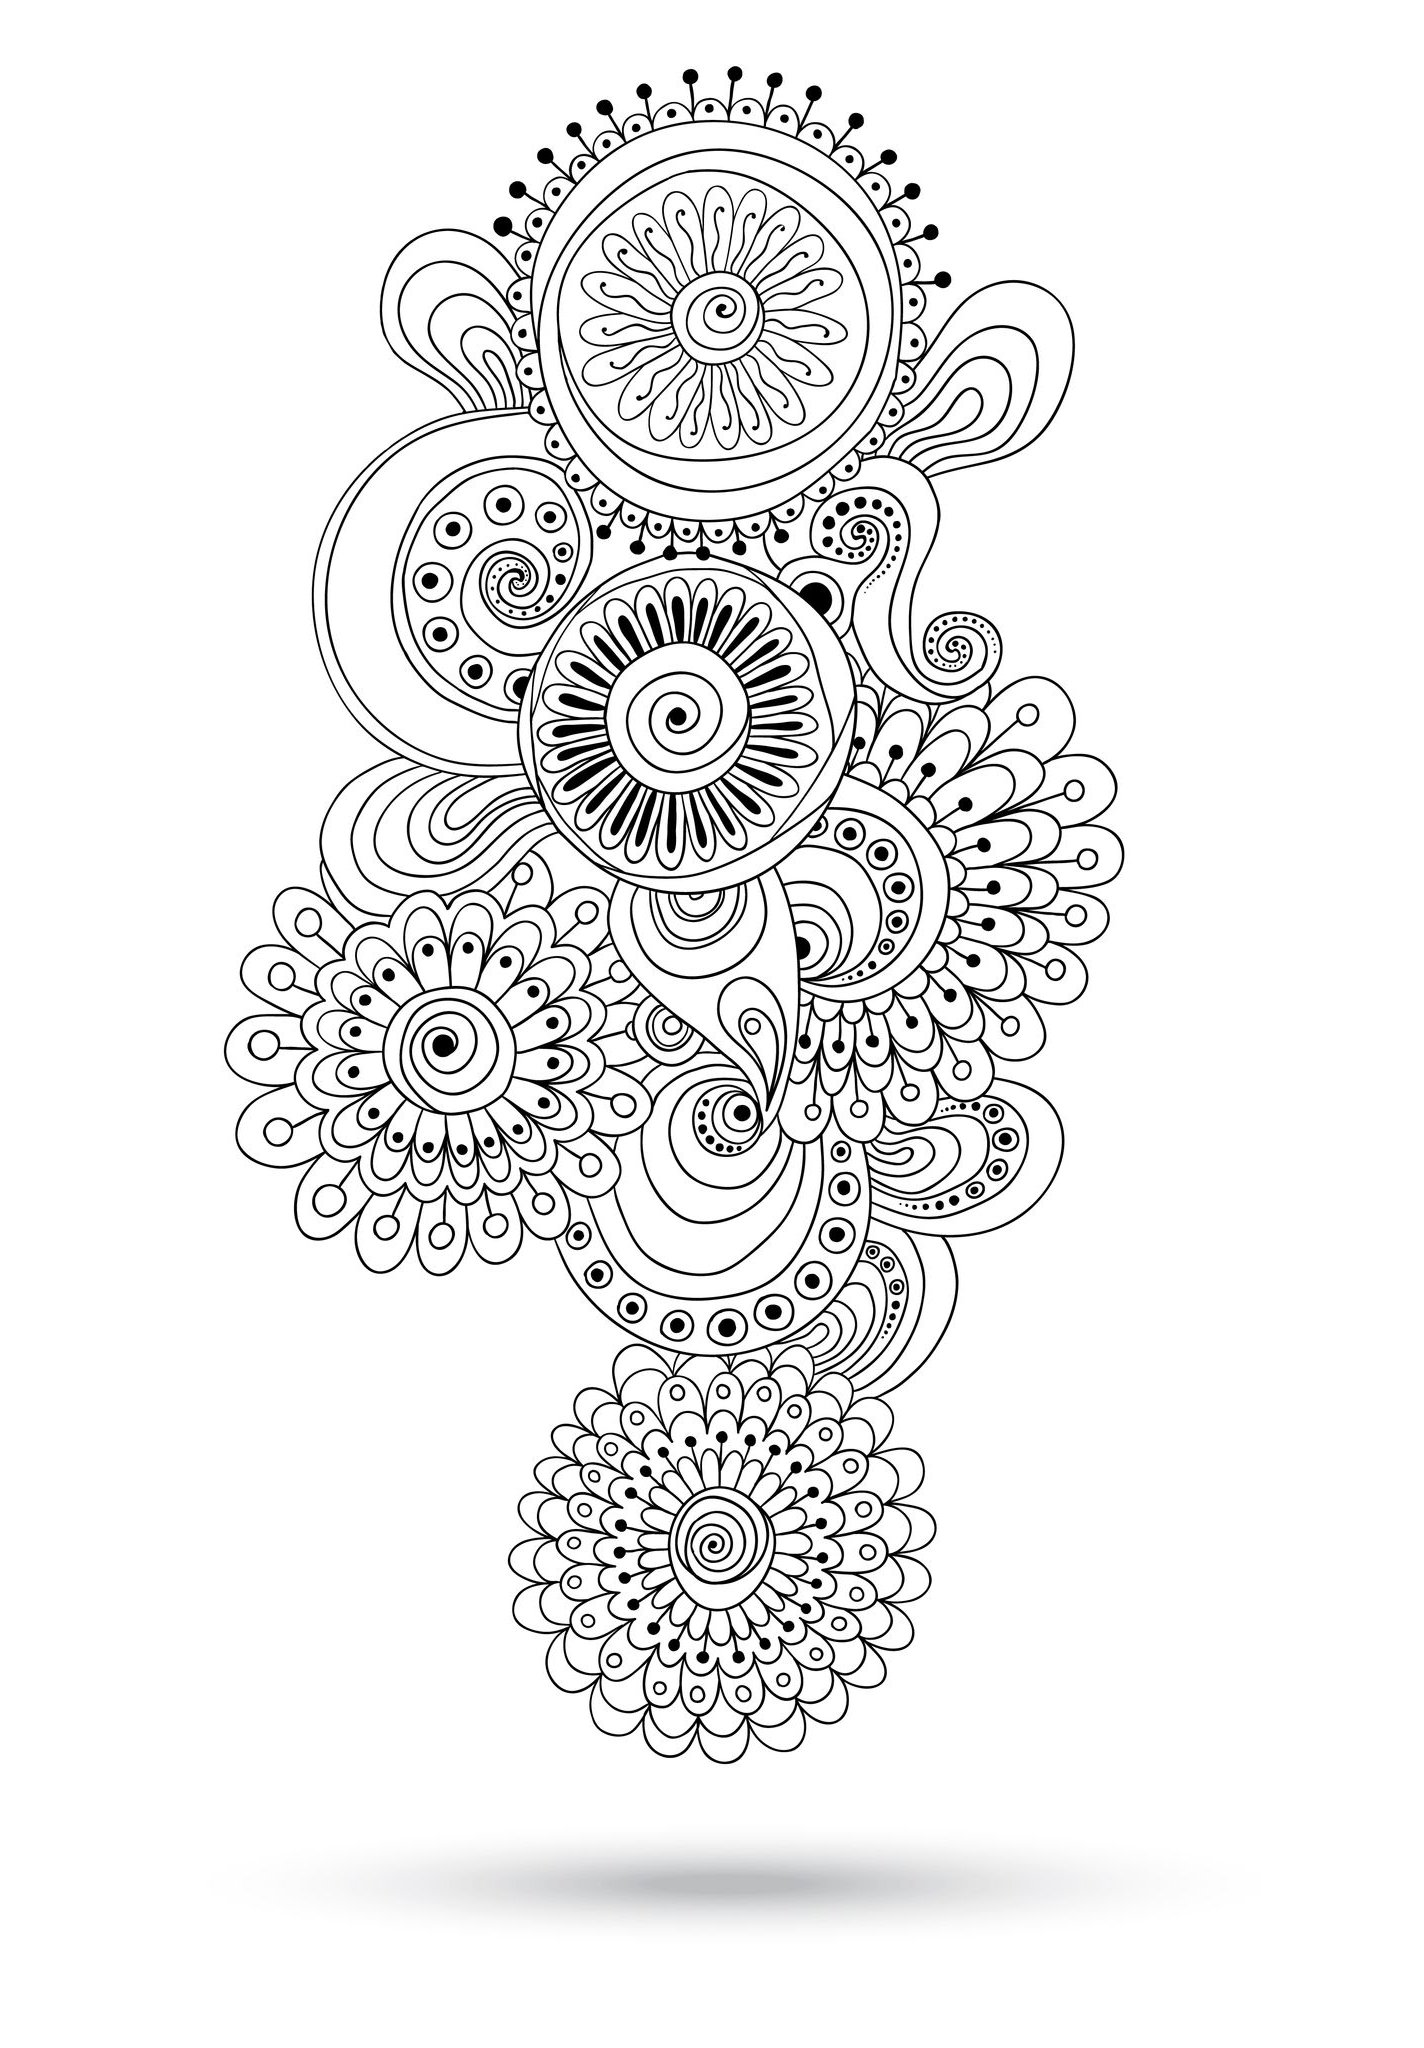 Coloriage Arbre Anti Stress.Coloriage Adulte Anti Stress